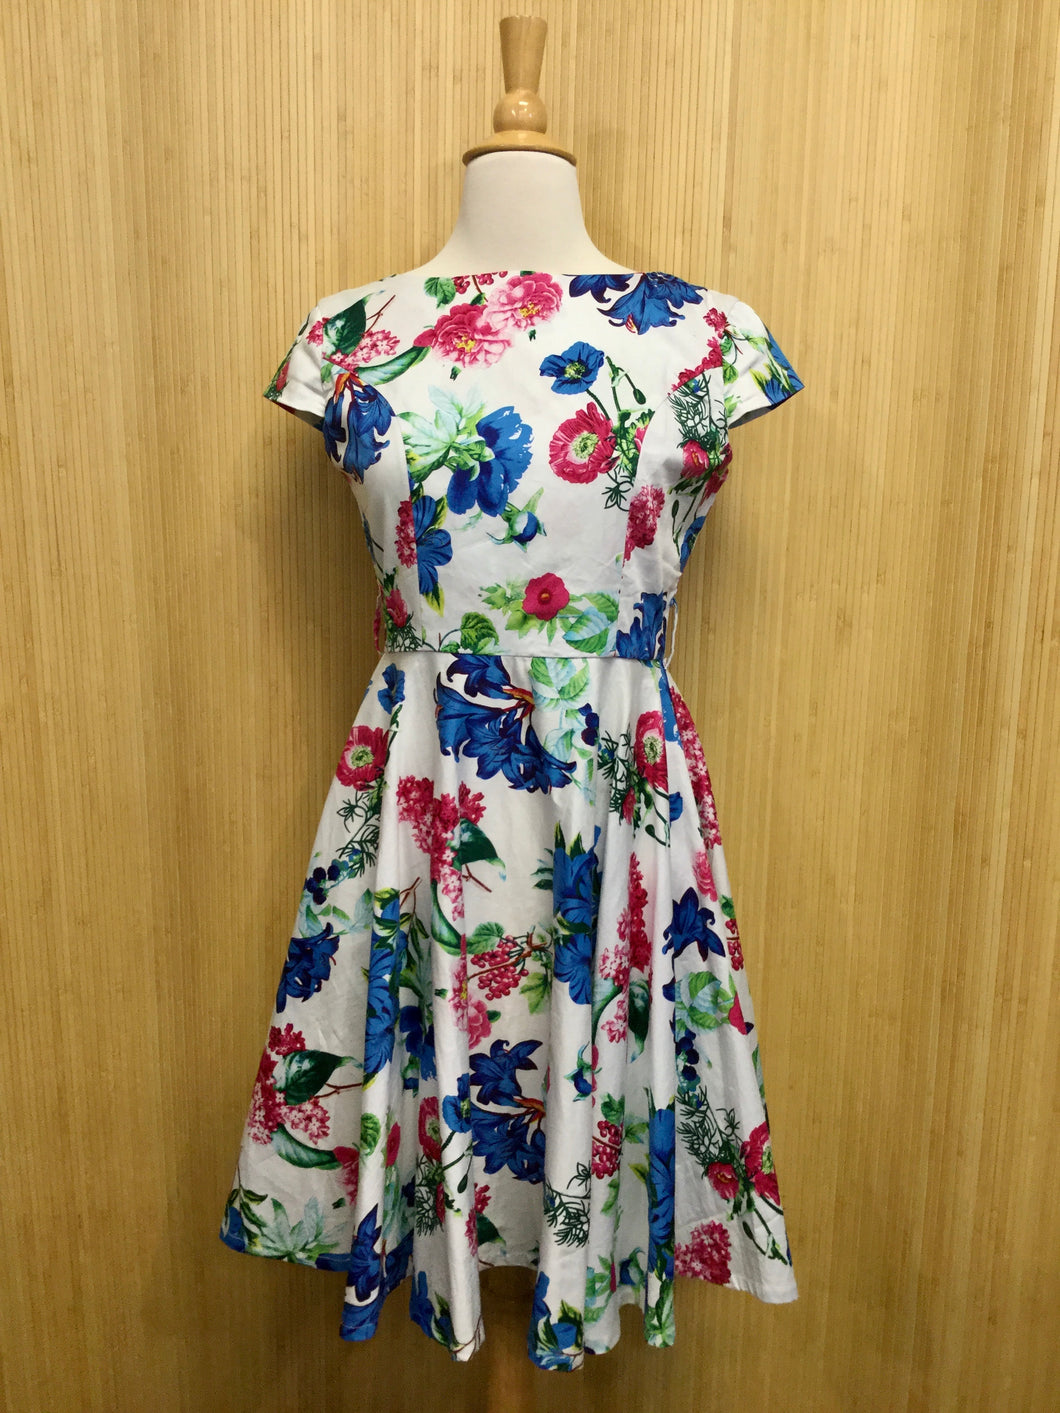 Chicanary Floral Dress (S)